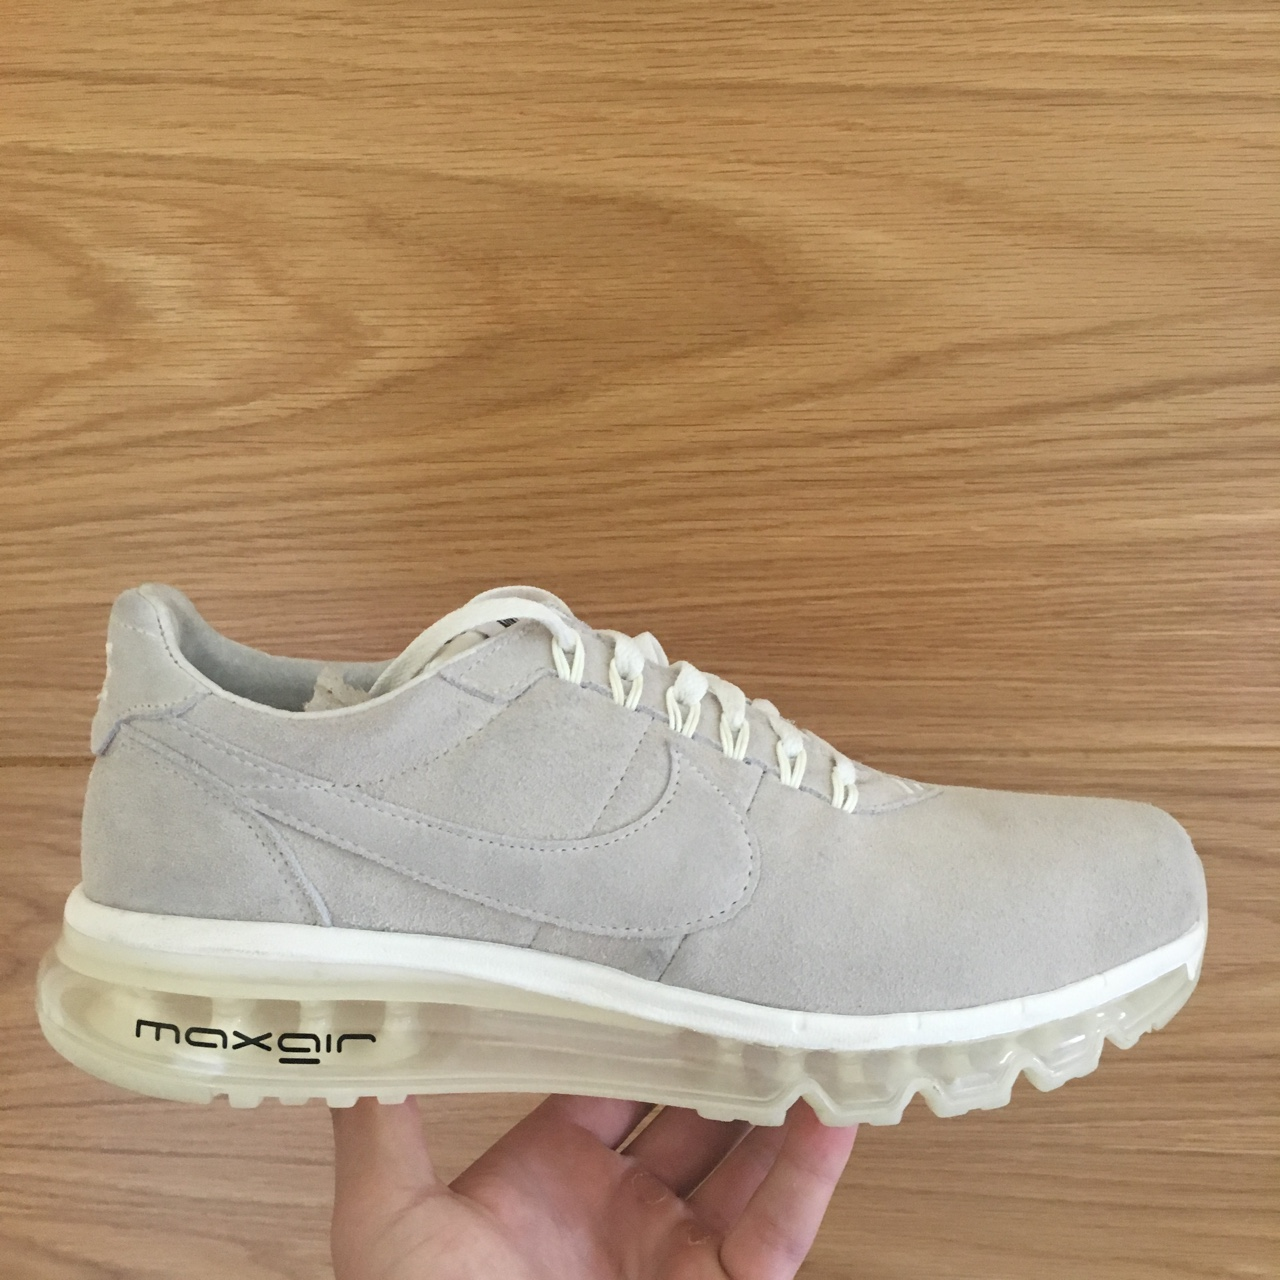 newest collection 7c0d8 a2c35 Nike Air Max LD- Zero beige white cream UK 9. Brand... - Depop